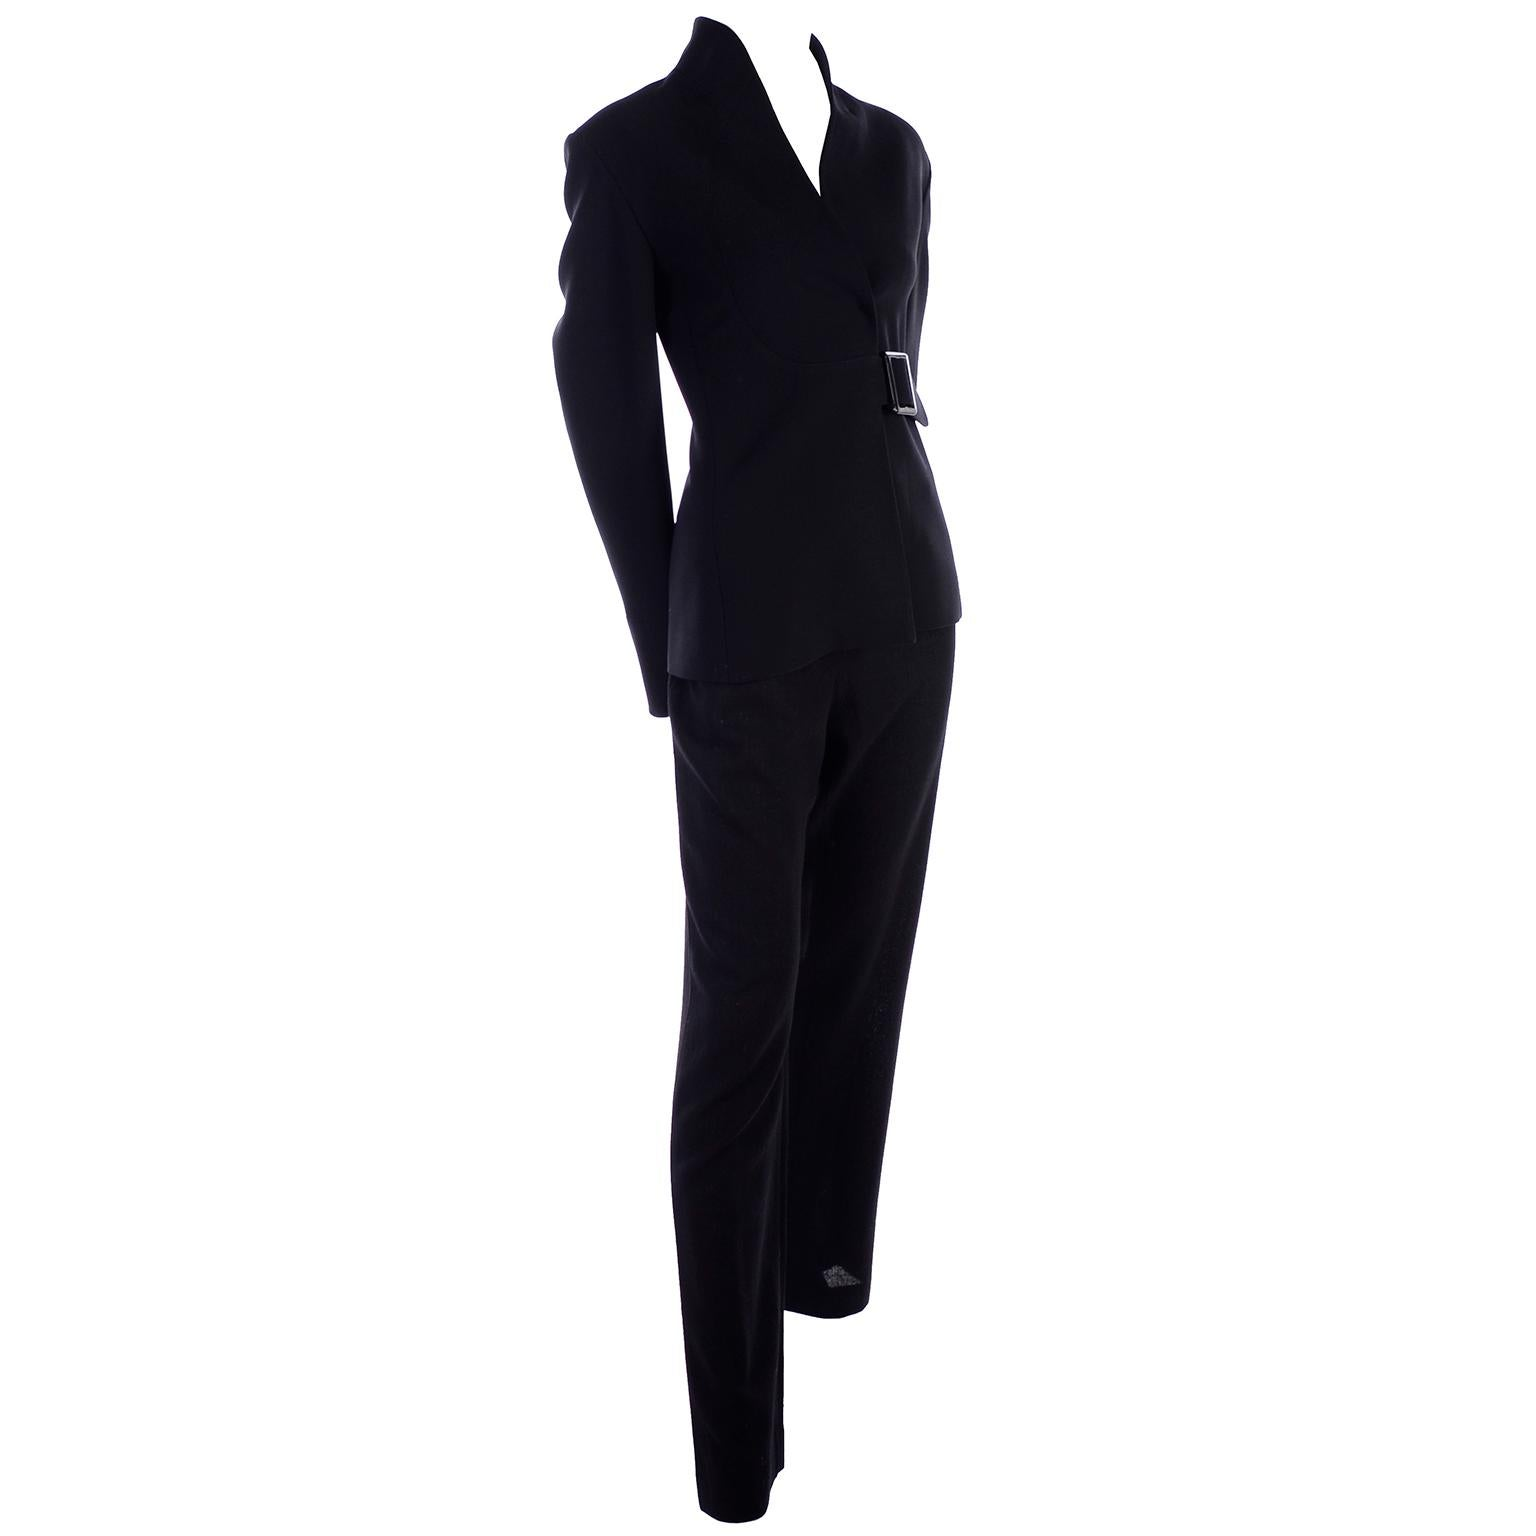 Valentino Black Crepe Trouser Pant suit With Belted Jacket Size 8